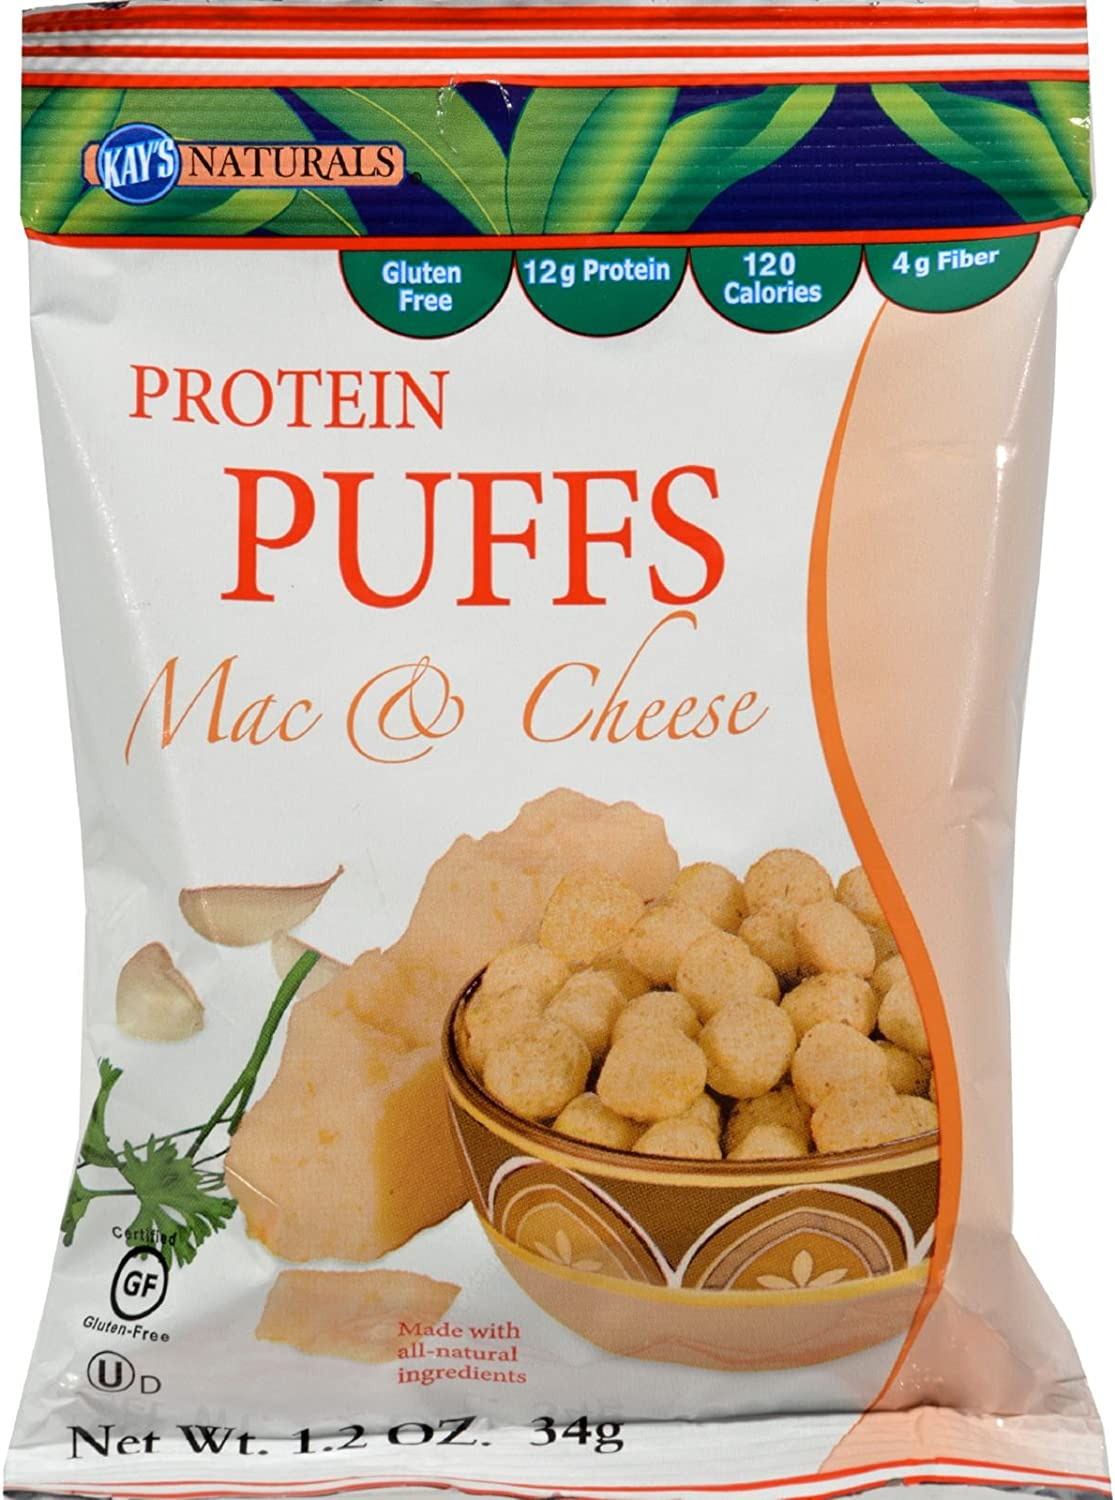 High order Kay's Naturals Protein Puffs - Mac of Bombing new work Cheese oz and Case 6-1.2